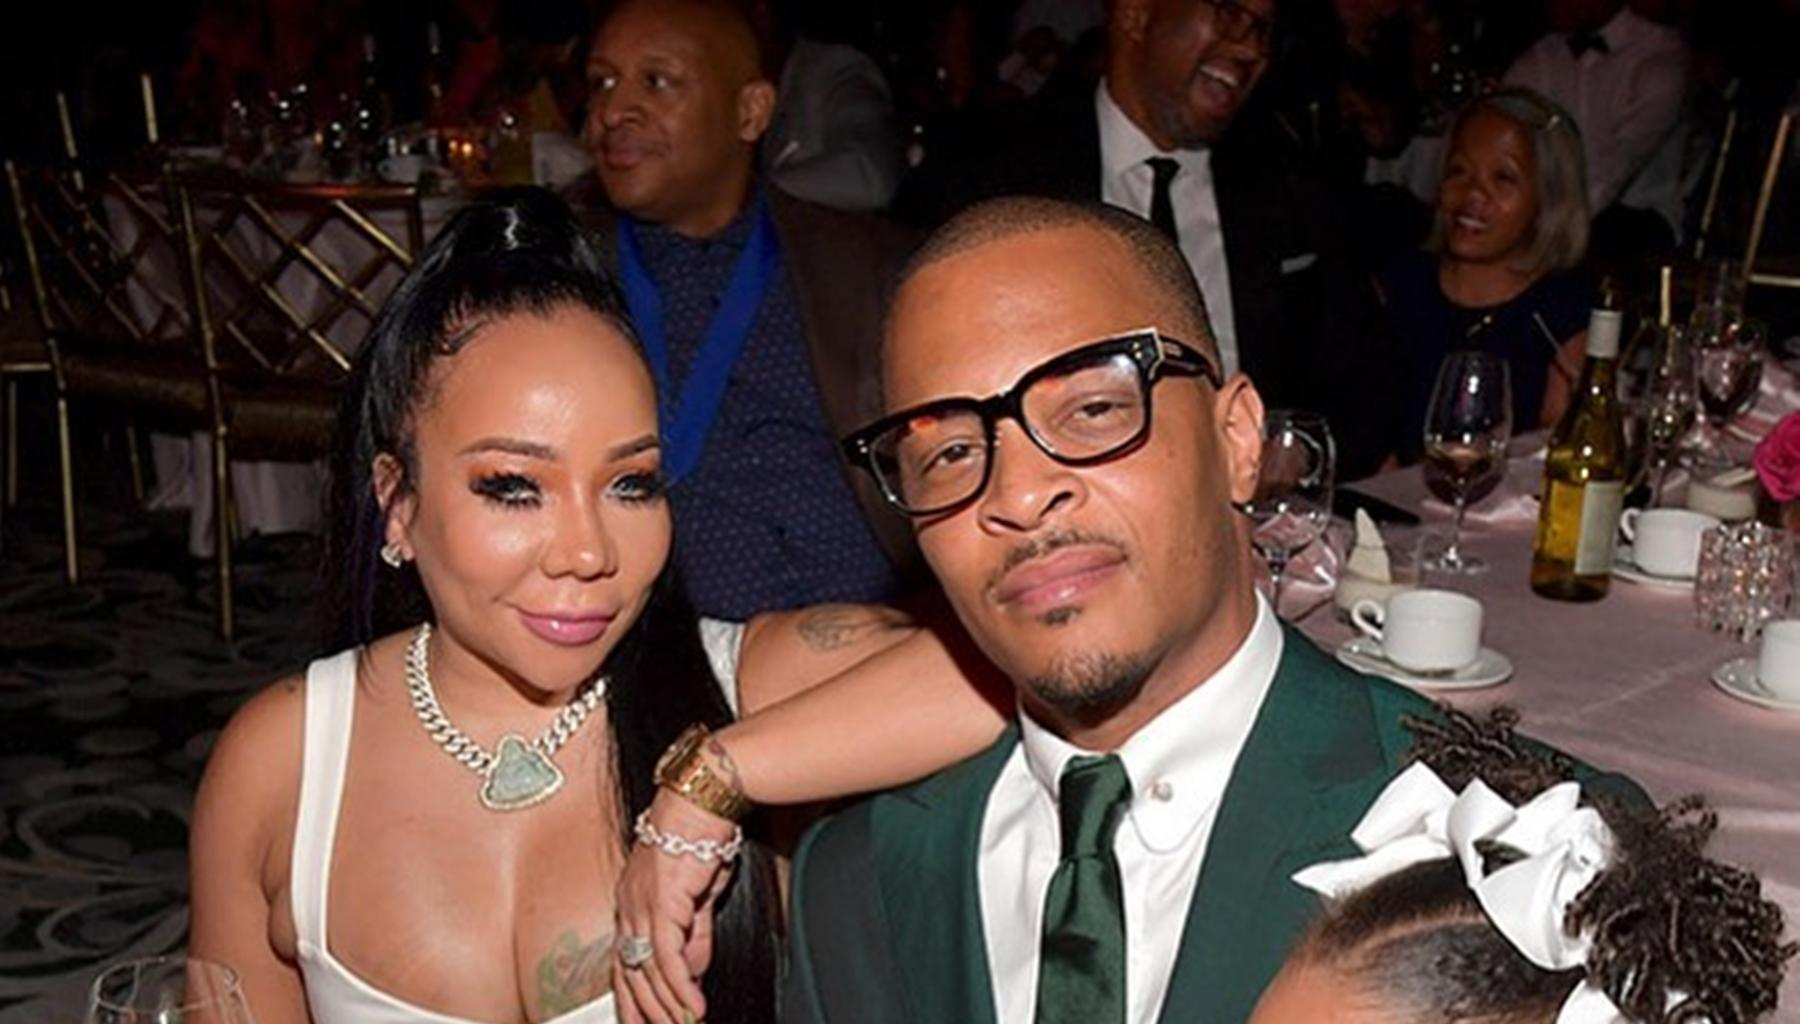 T.I. Explains What He Is Busy Doing With Tiny Harris Via Lovey-Dovey Pictures, But Something Else Caught Fans' Attention